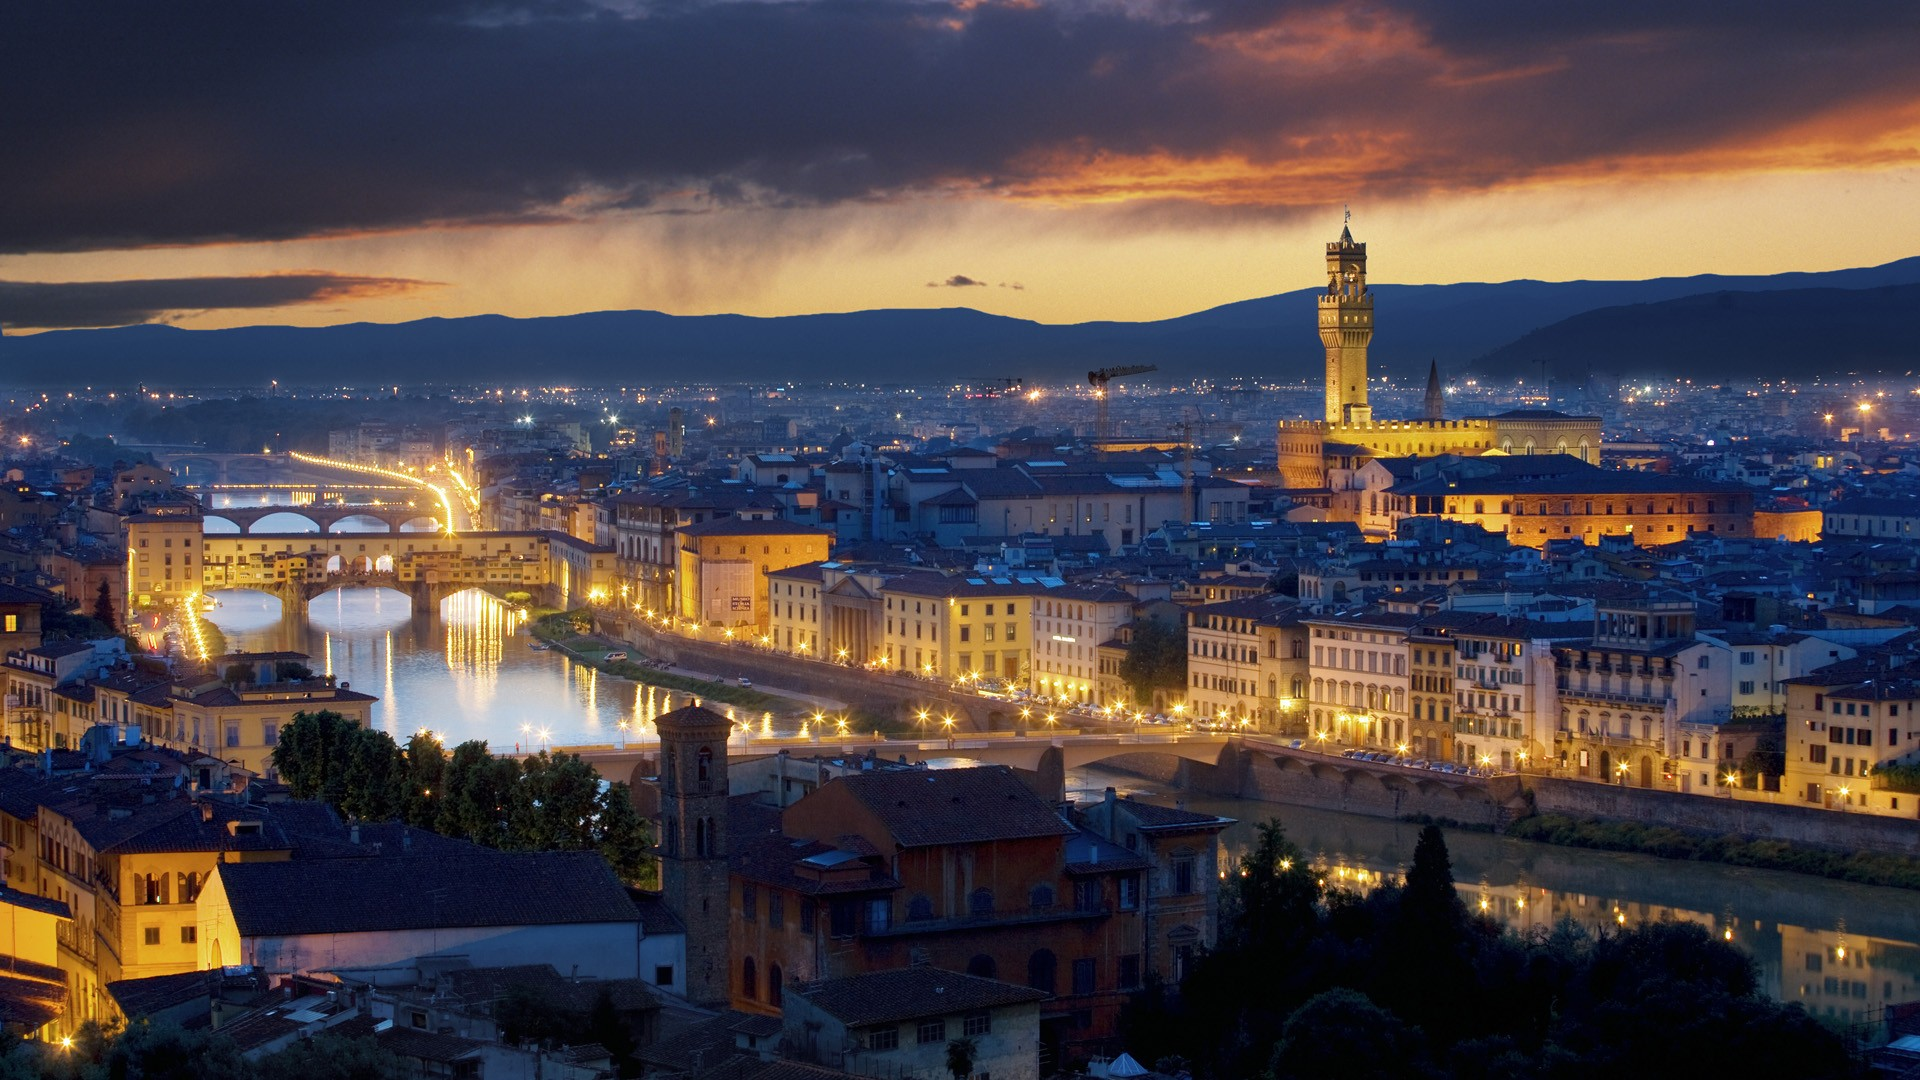 Cityscapes Italy Wallpaper 1920x1080 Cityscapes Italy Florence 1920x1080